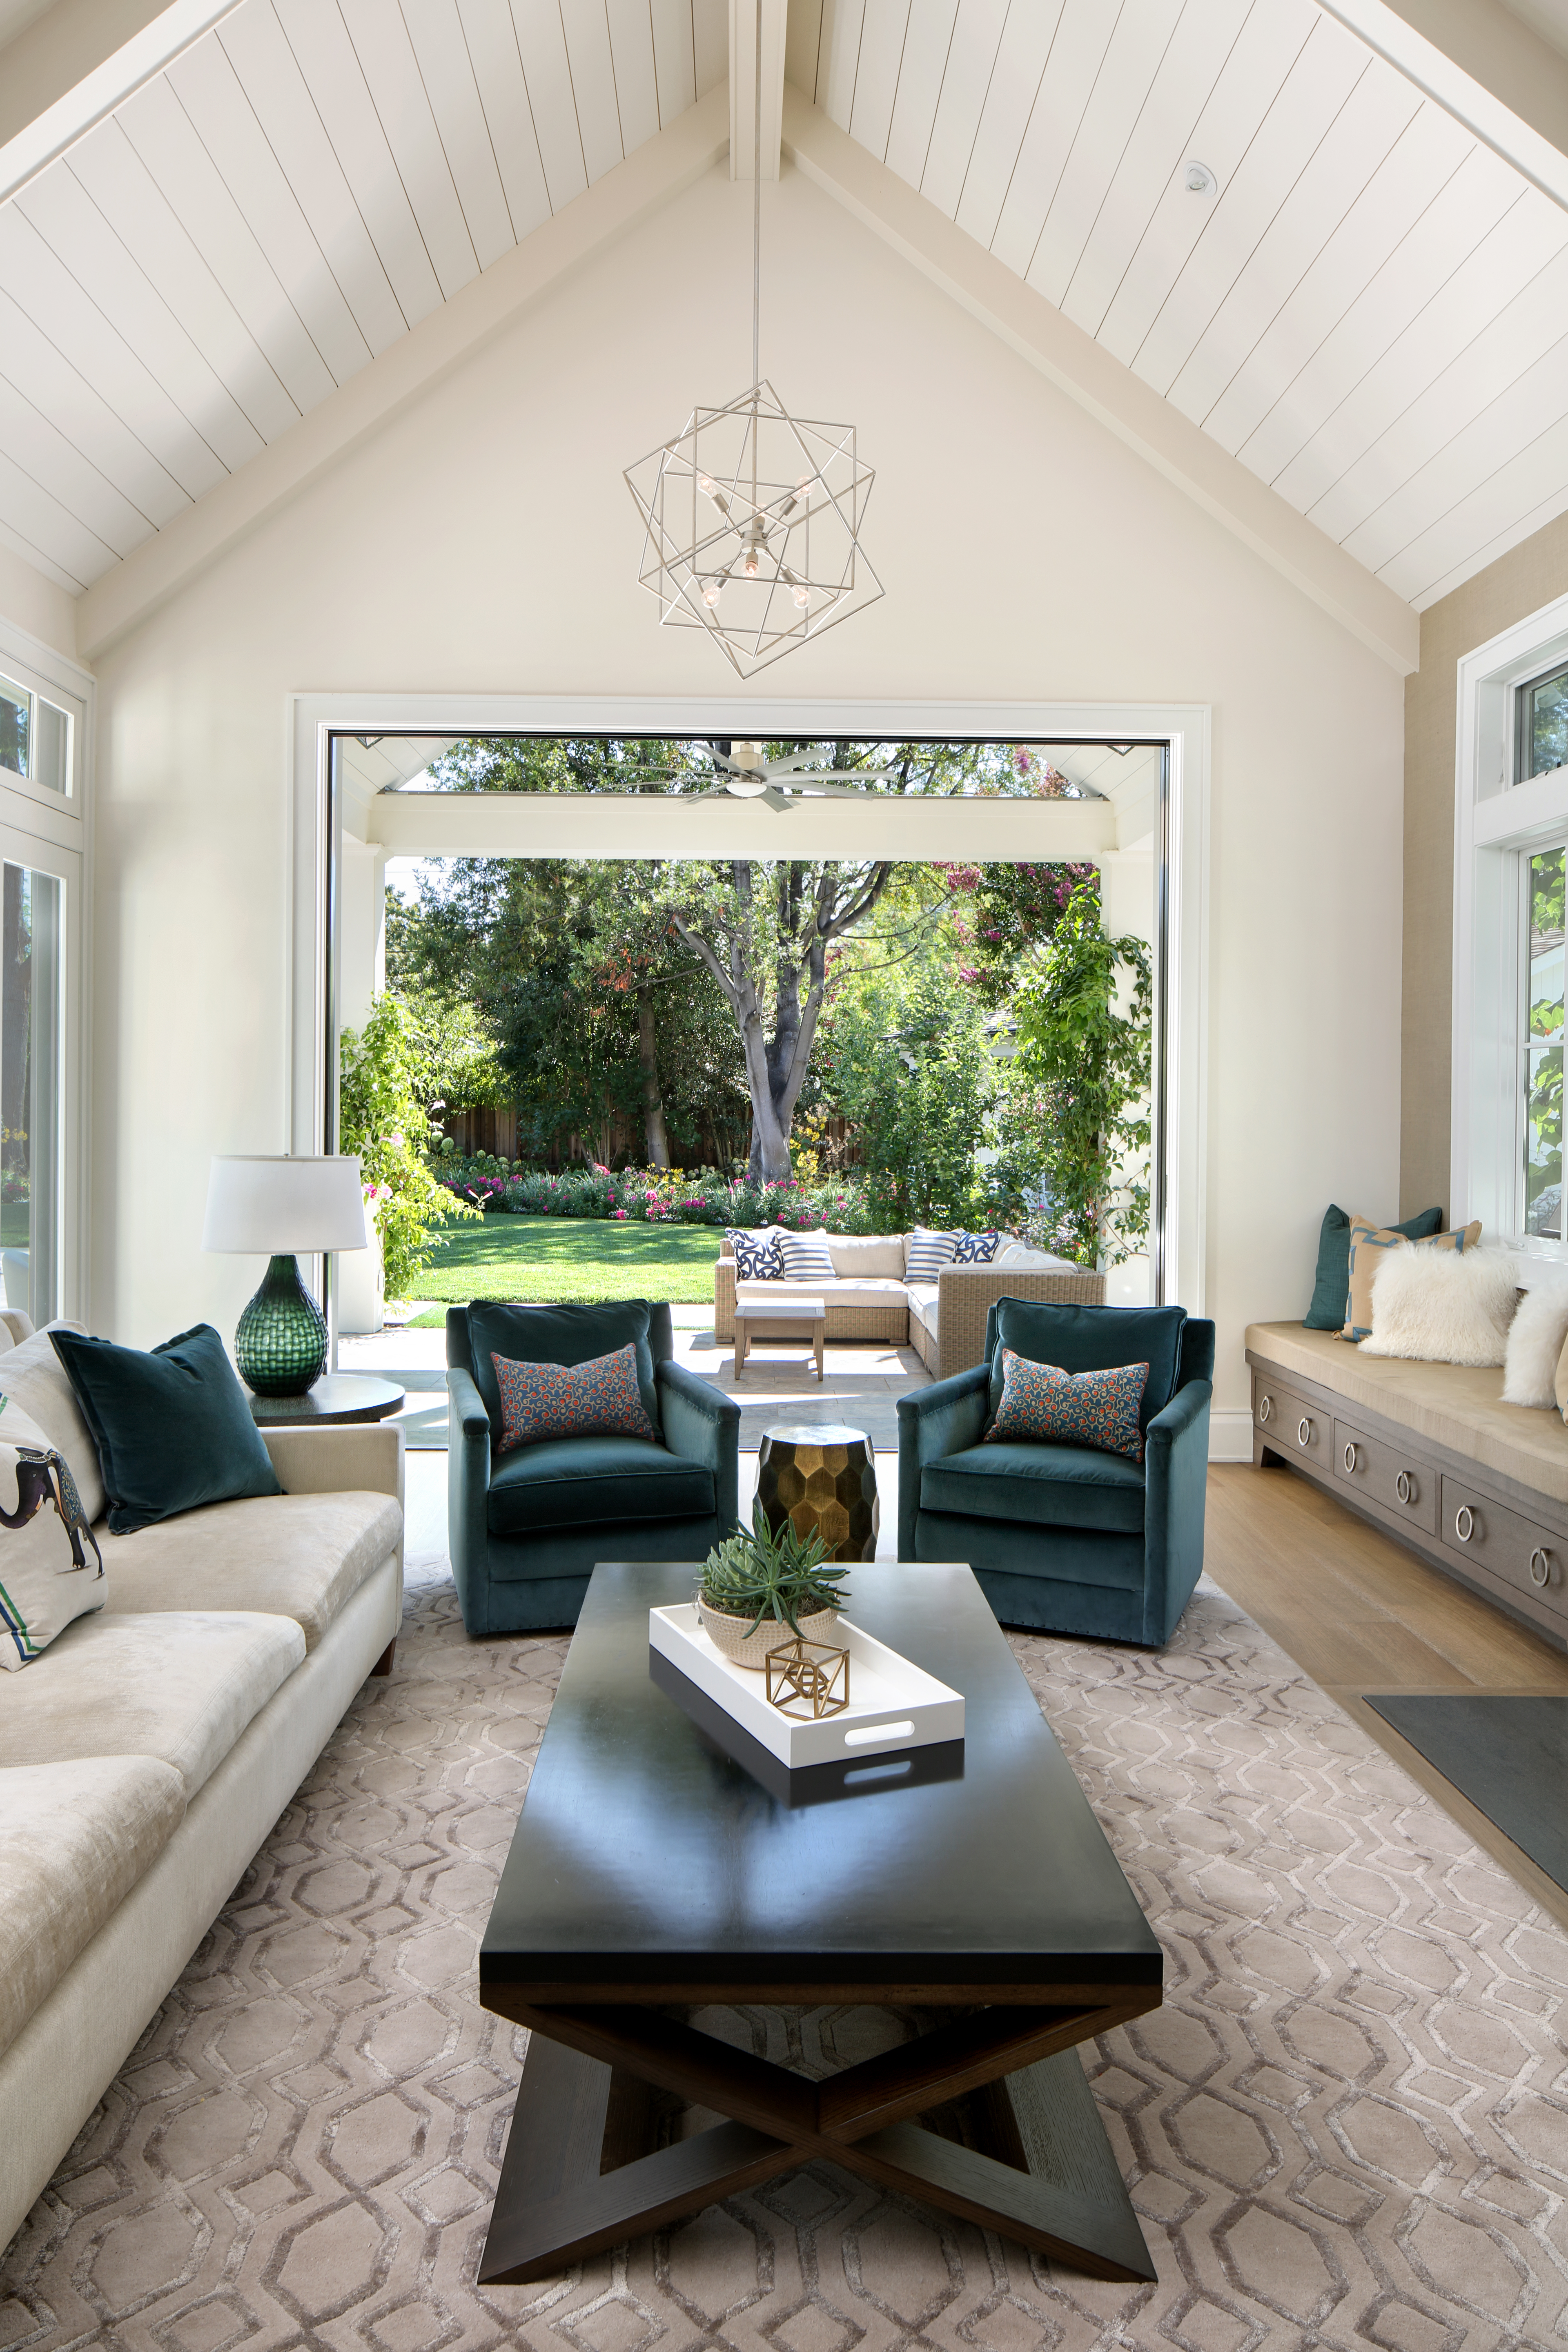 Sophisticated yet striking, this spacious living area features a vaulted ceiling with a caged chandelier. A set of teal armchairs are from Room & Board, the sofa is from Verellen with Kravet fabric, and the custom bench is from Osborn & Little. Pillows by Osborne & Little and Kravet decorate furnishings throughout the space.